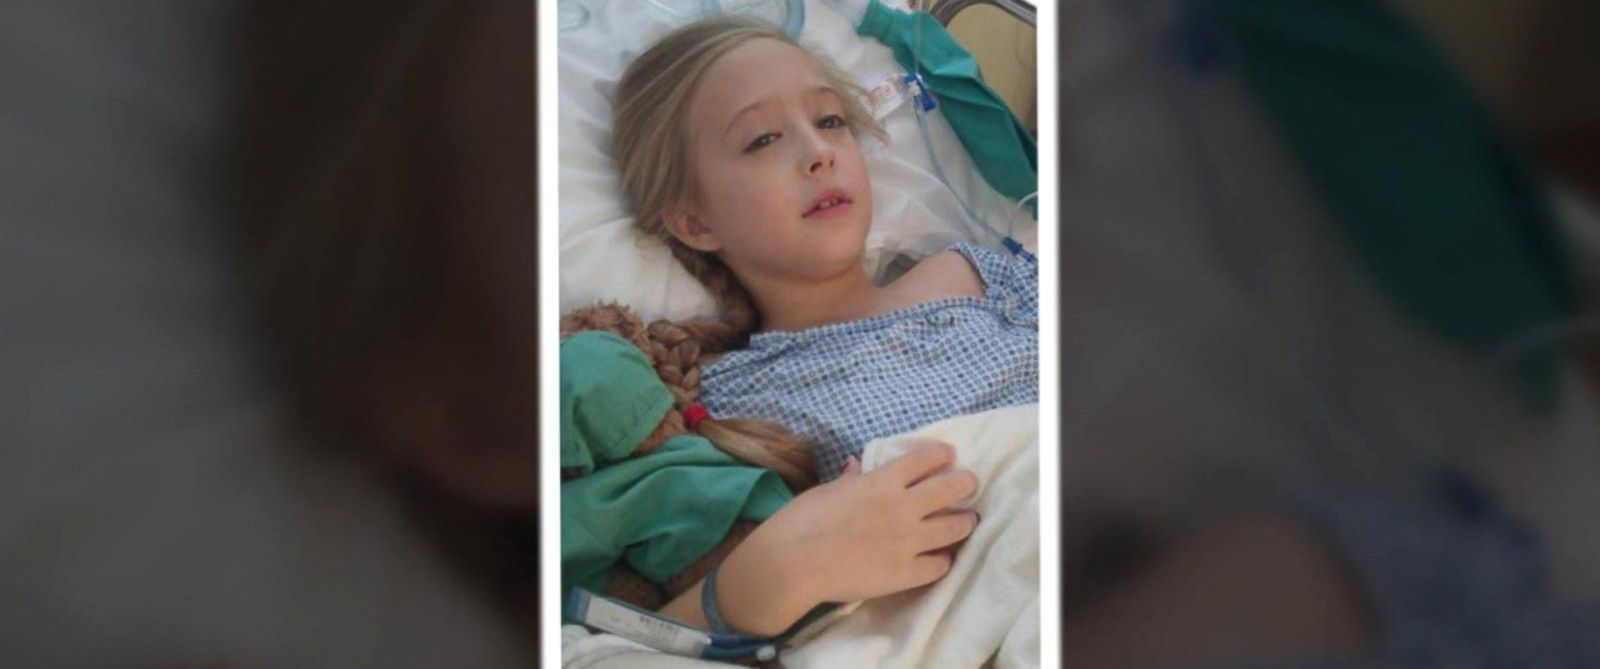 Girl Fights Rare Case Of Breast Cancer At Age 8 Abc News